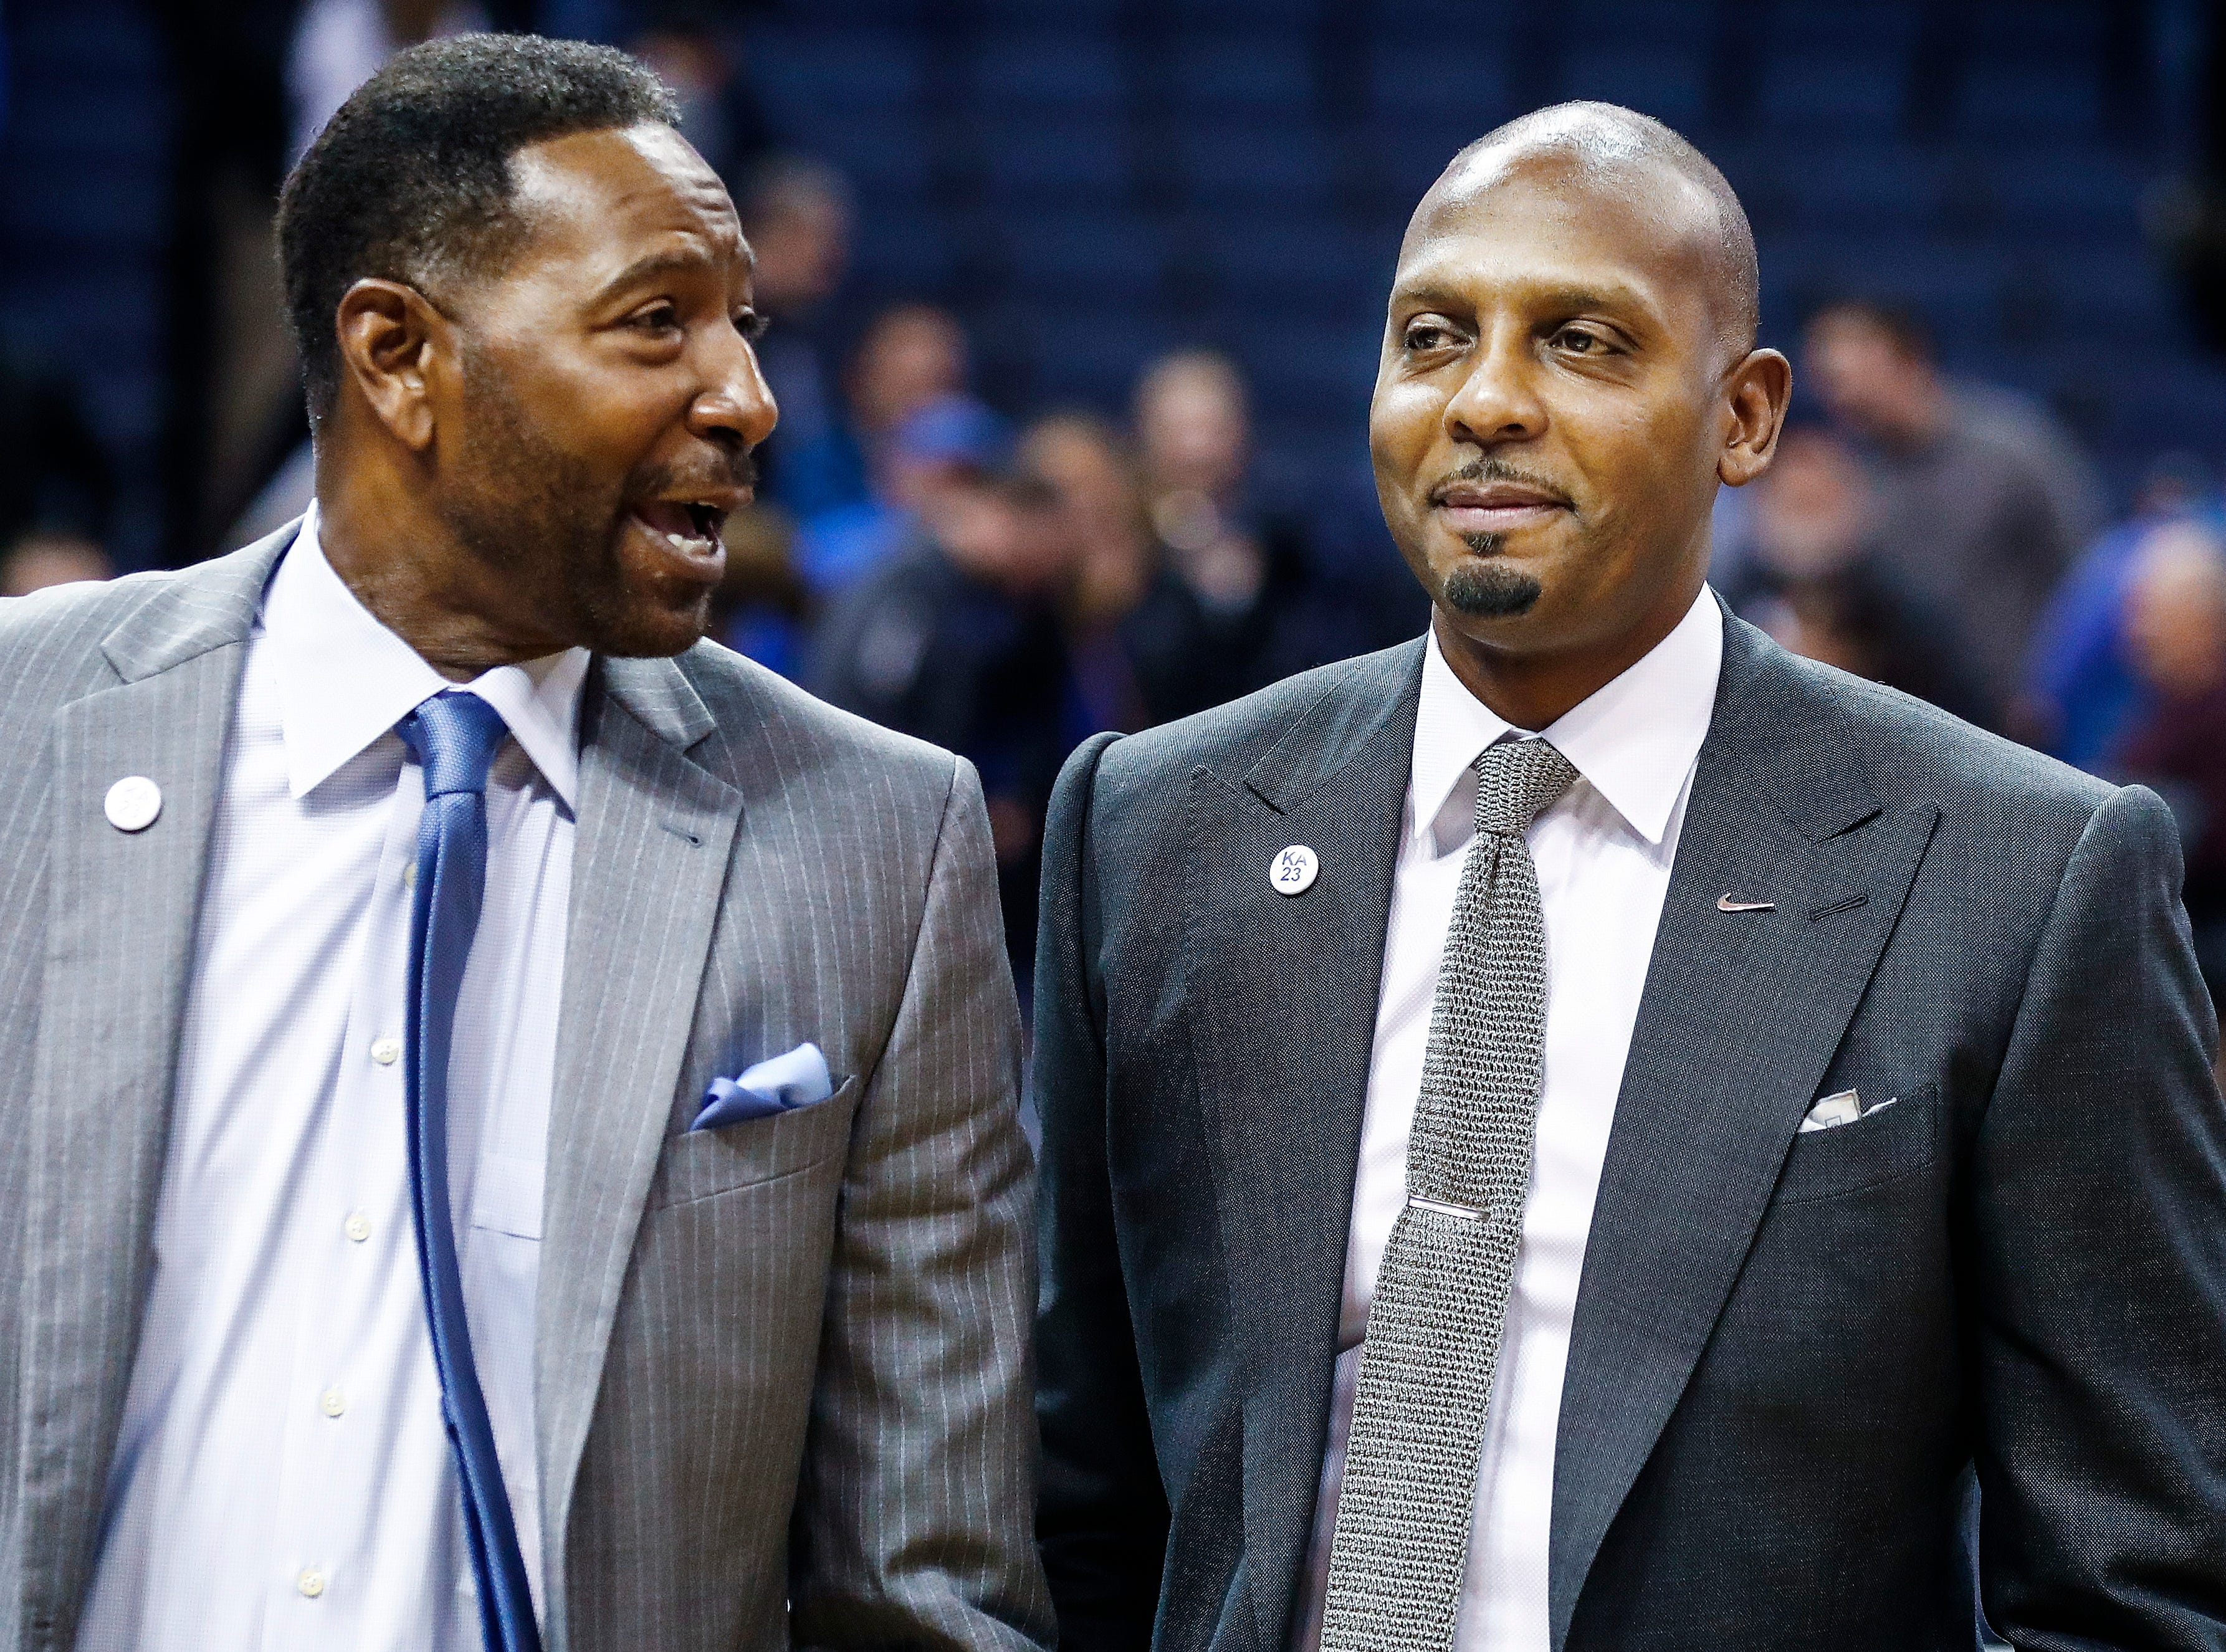 Memphis head coach Penny Hardaway (right) and assistant coach Sam Mitchell (left) smile as they walk-off the court after defeating ECU at the FedExForum, Thursday, January 10, 2019.